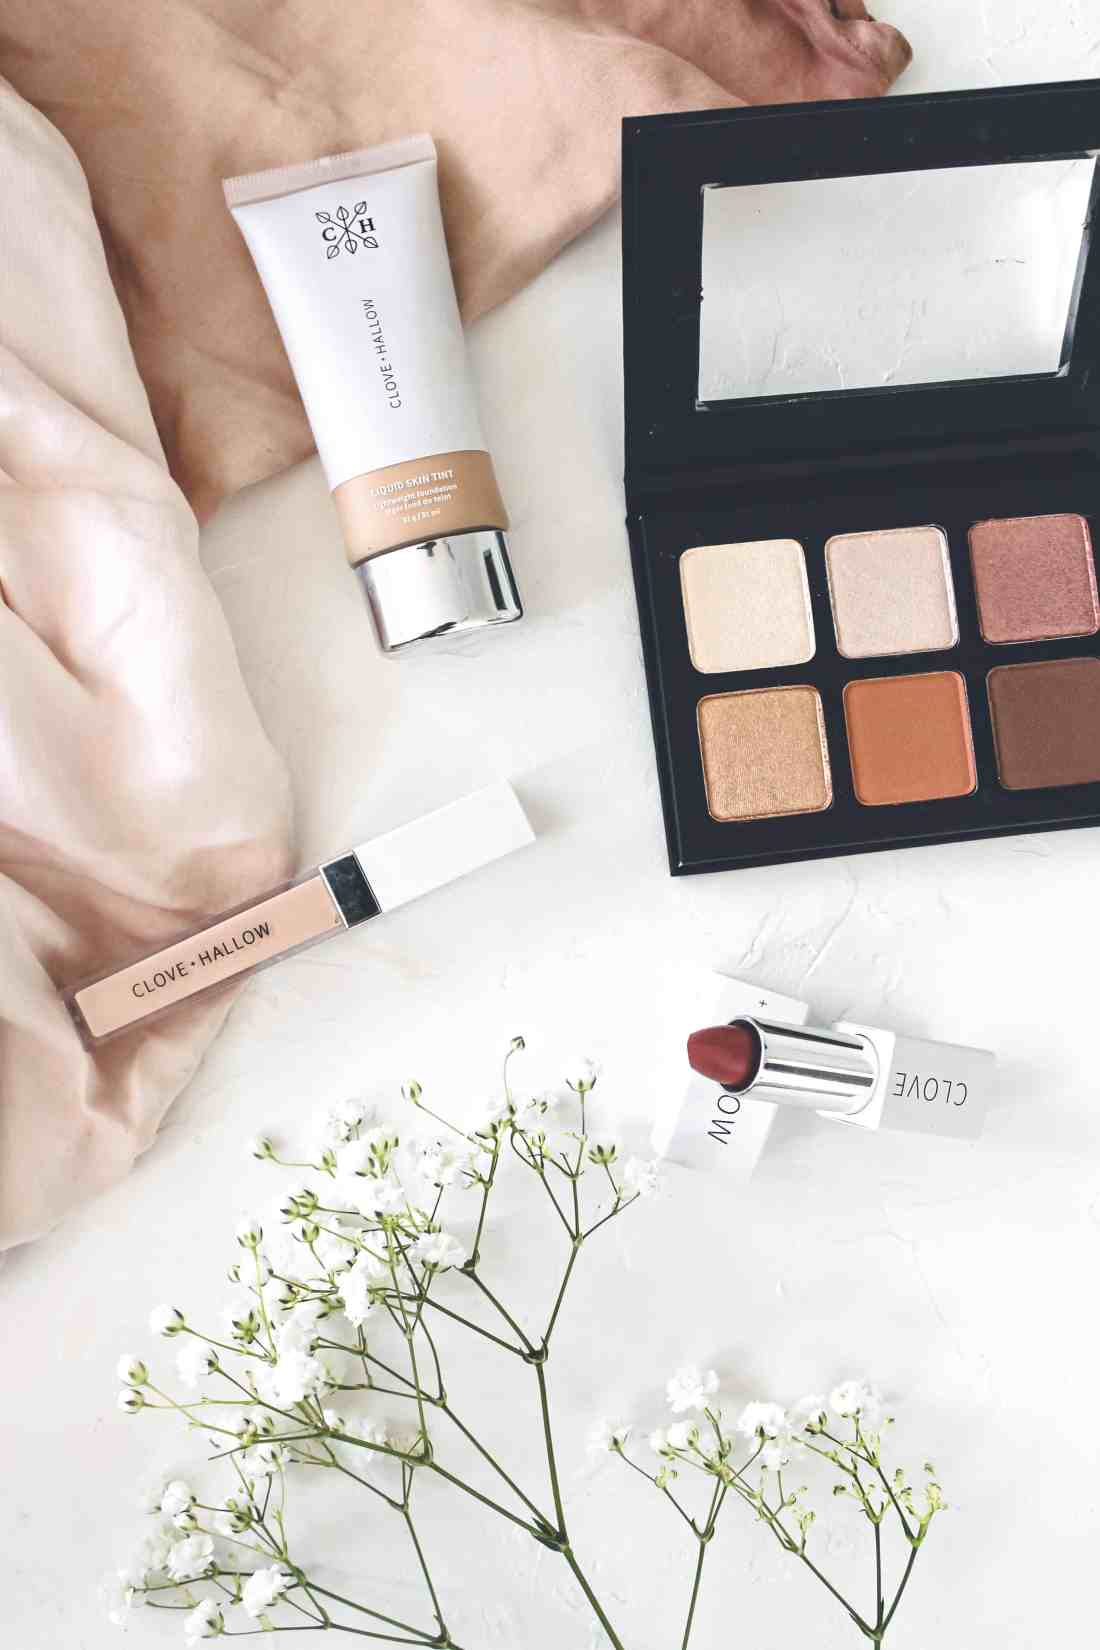 CLOVE + HALLOW clean beauty brand makeup review. Reviewing their Liquid Skin Tint foundation, the Conceal + Correct liquid concealer & more!